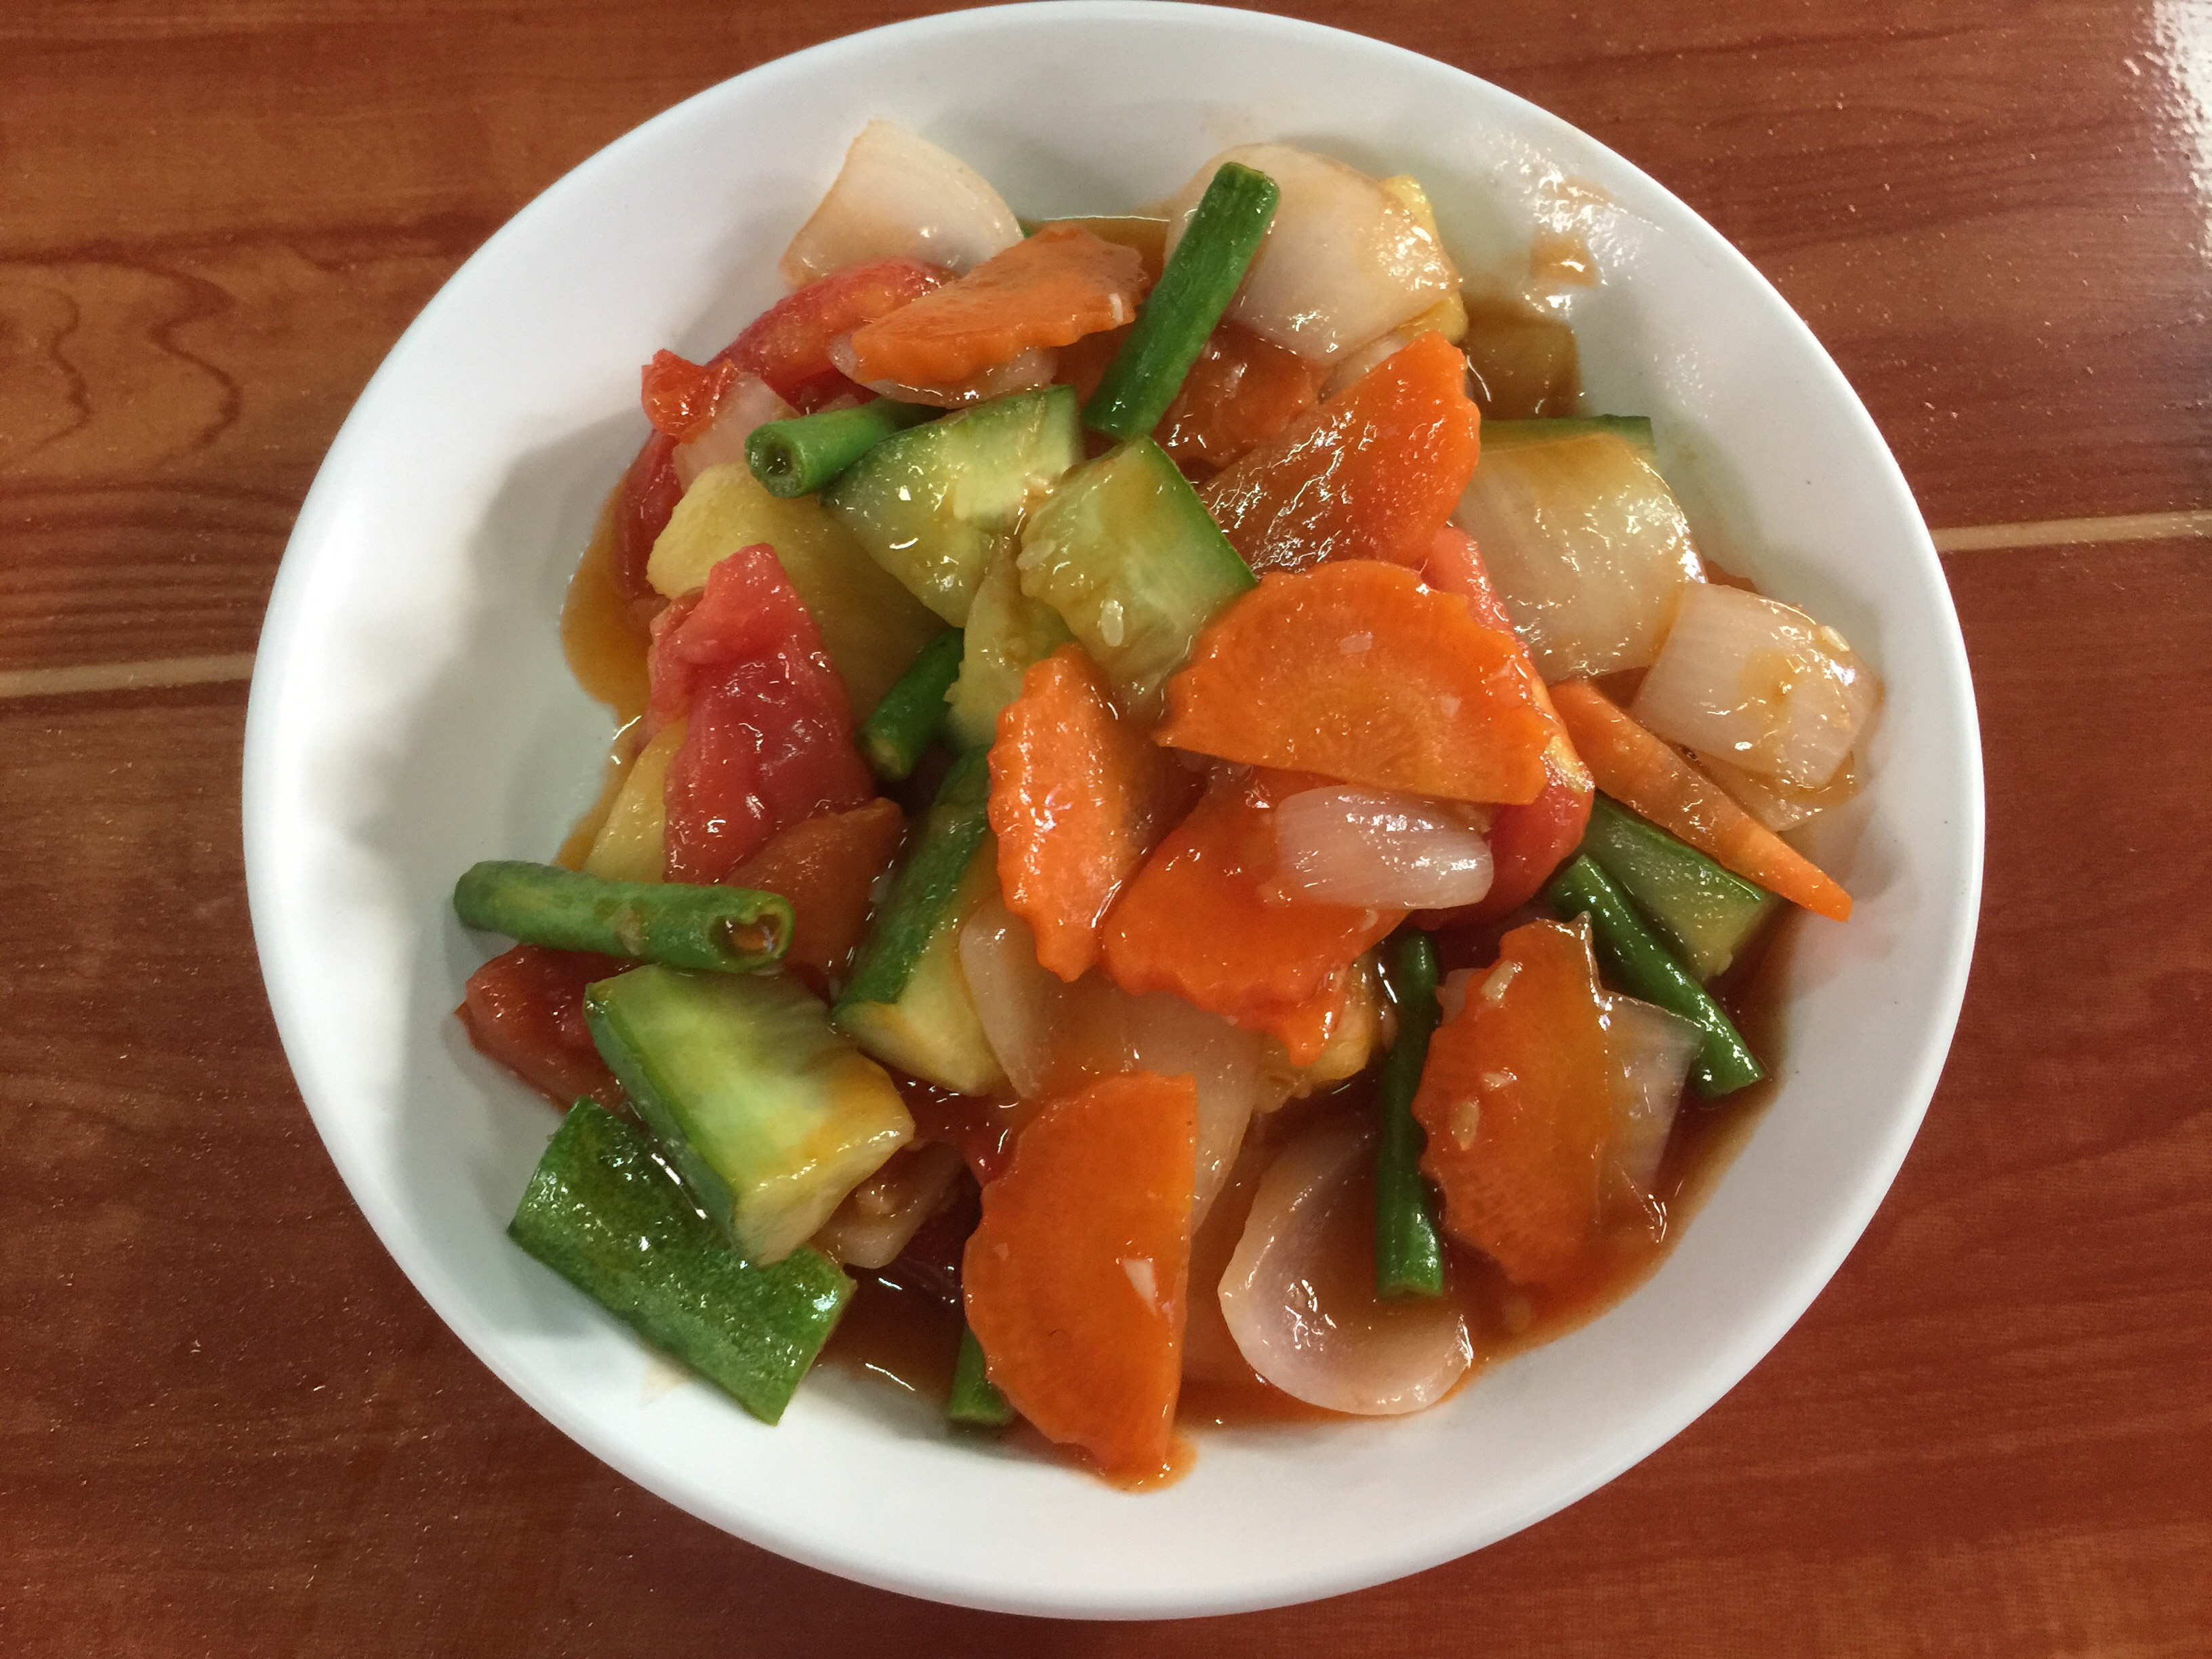 Sweet & Sour Vegetables